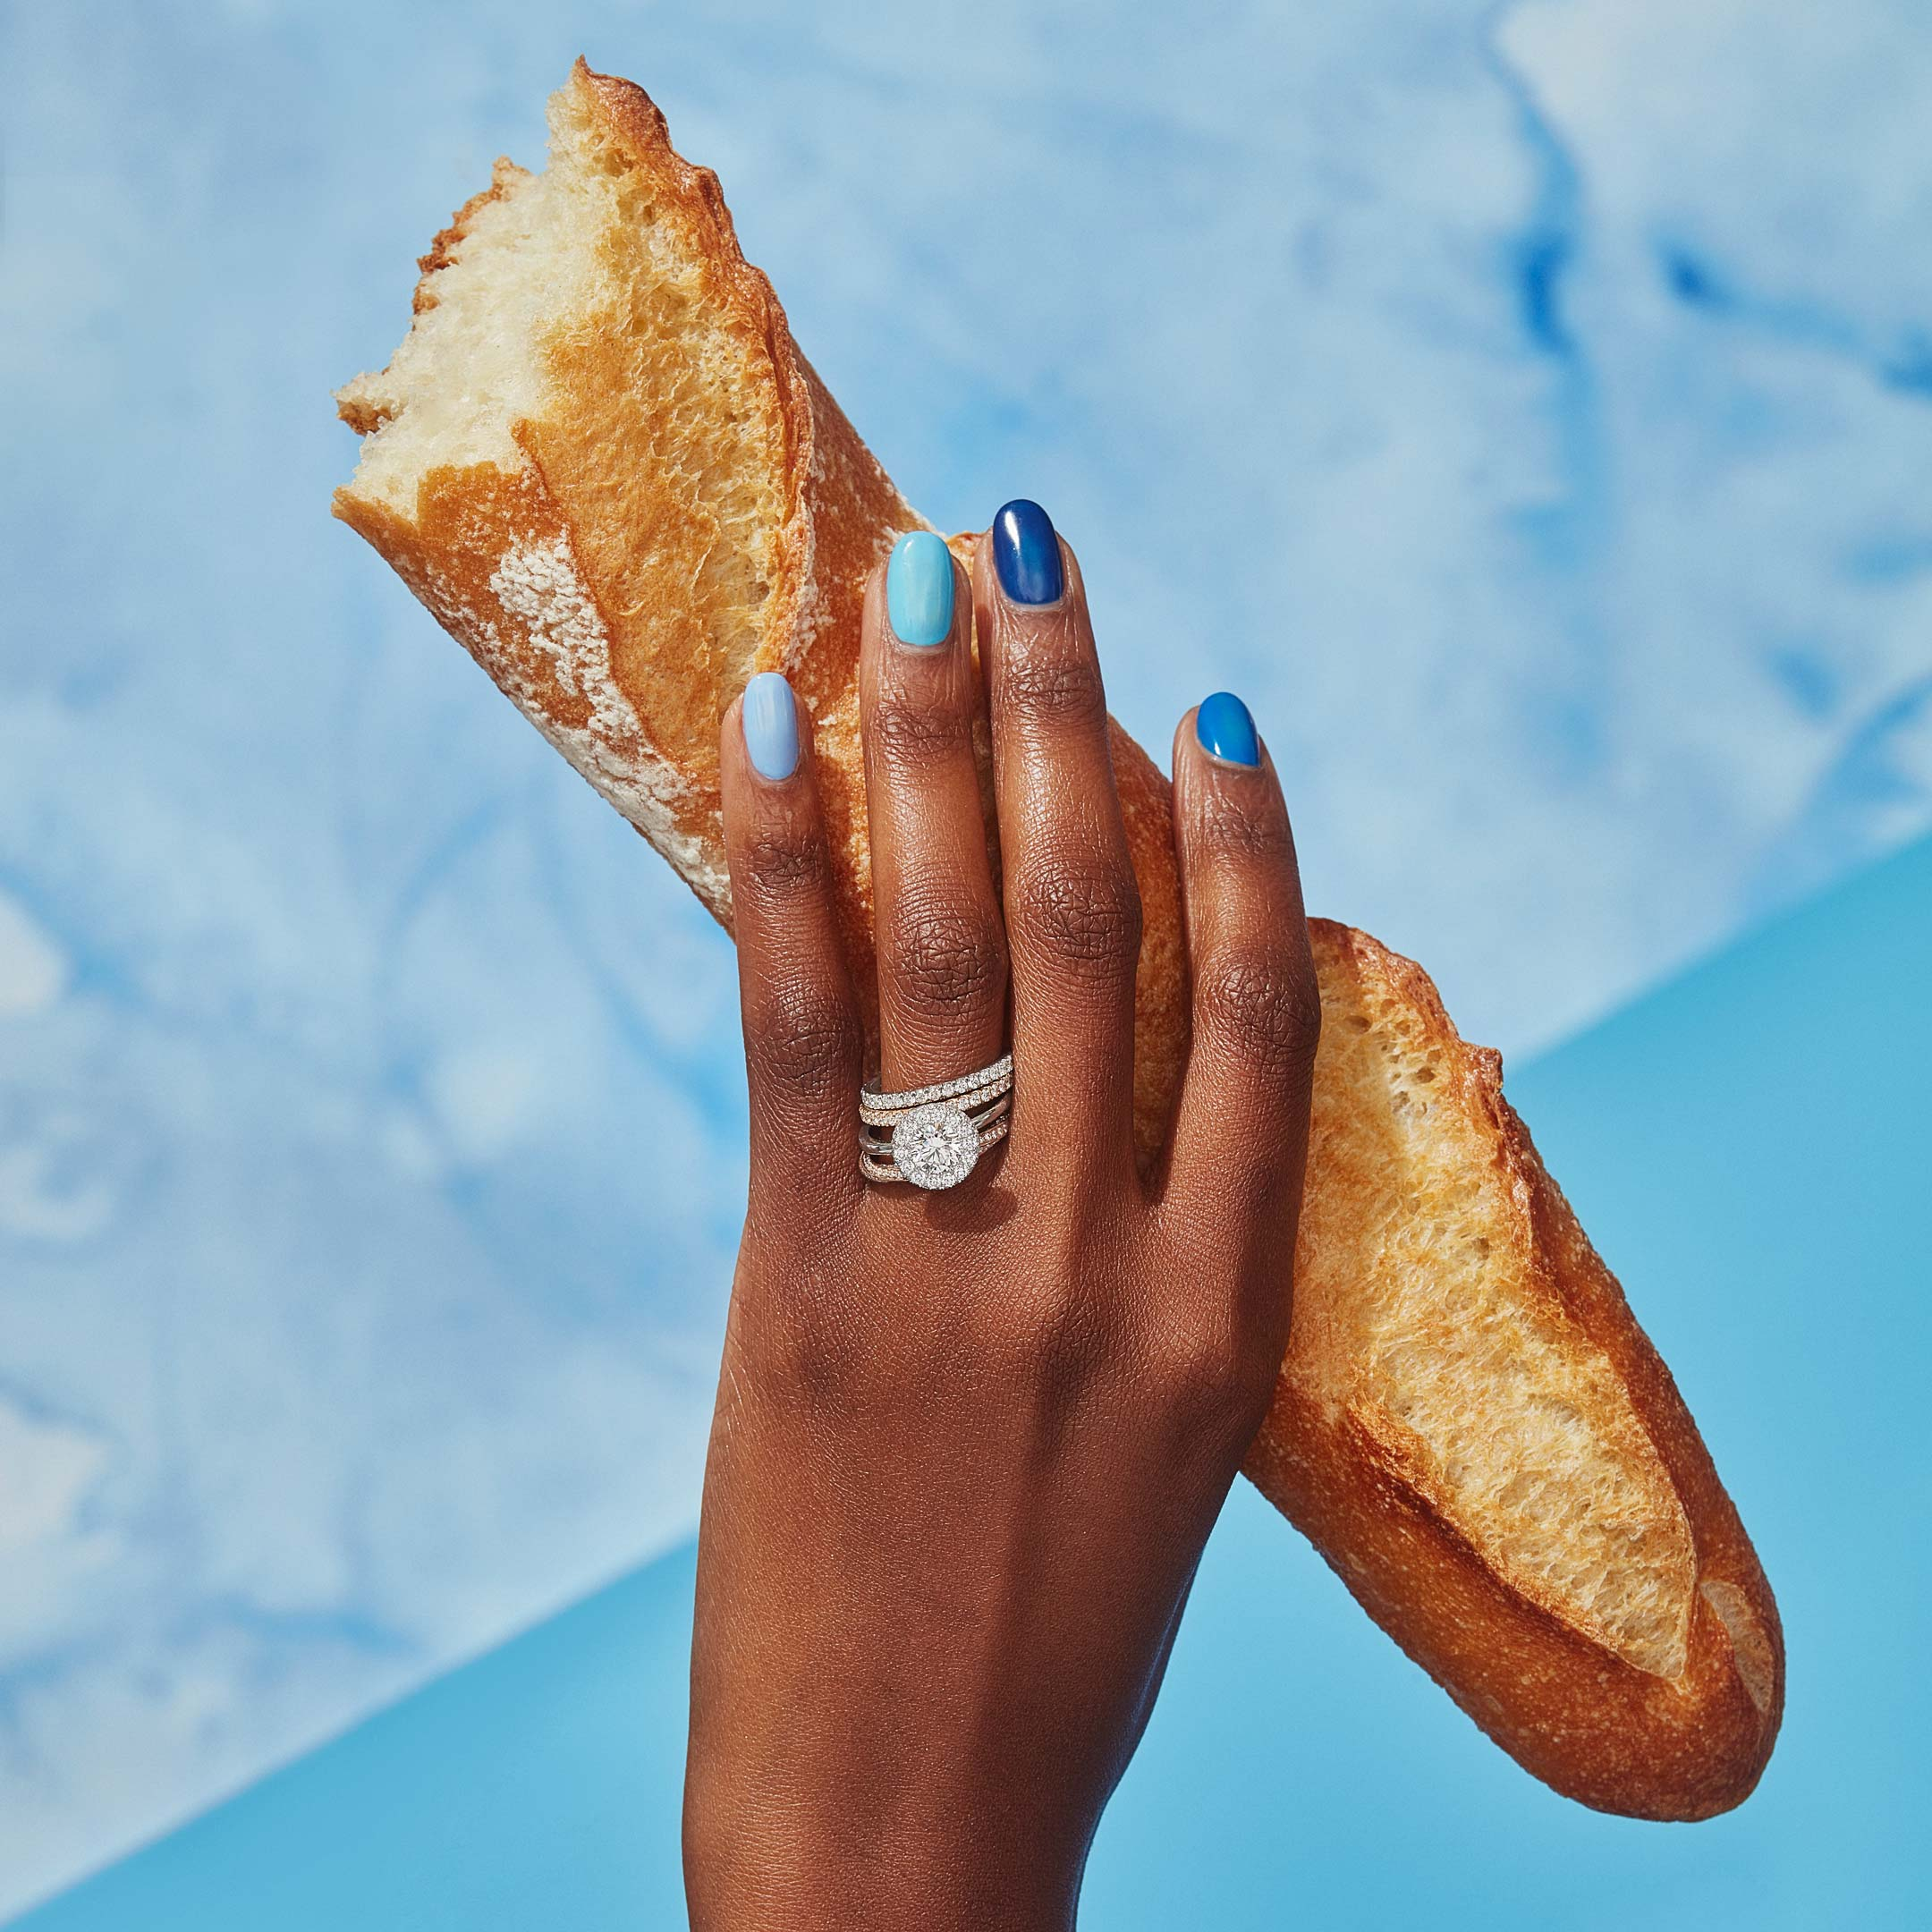 Colette Round Brilliant Seamless Halo® Engagement Ring with a solid band in Platinum Hand with Bread Lifestyle by Oui by Jean Dousset